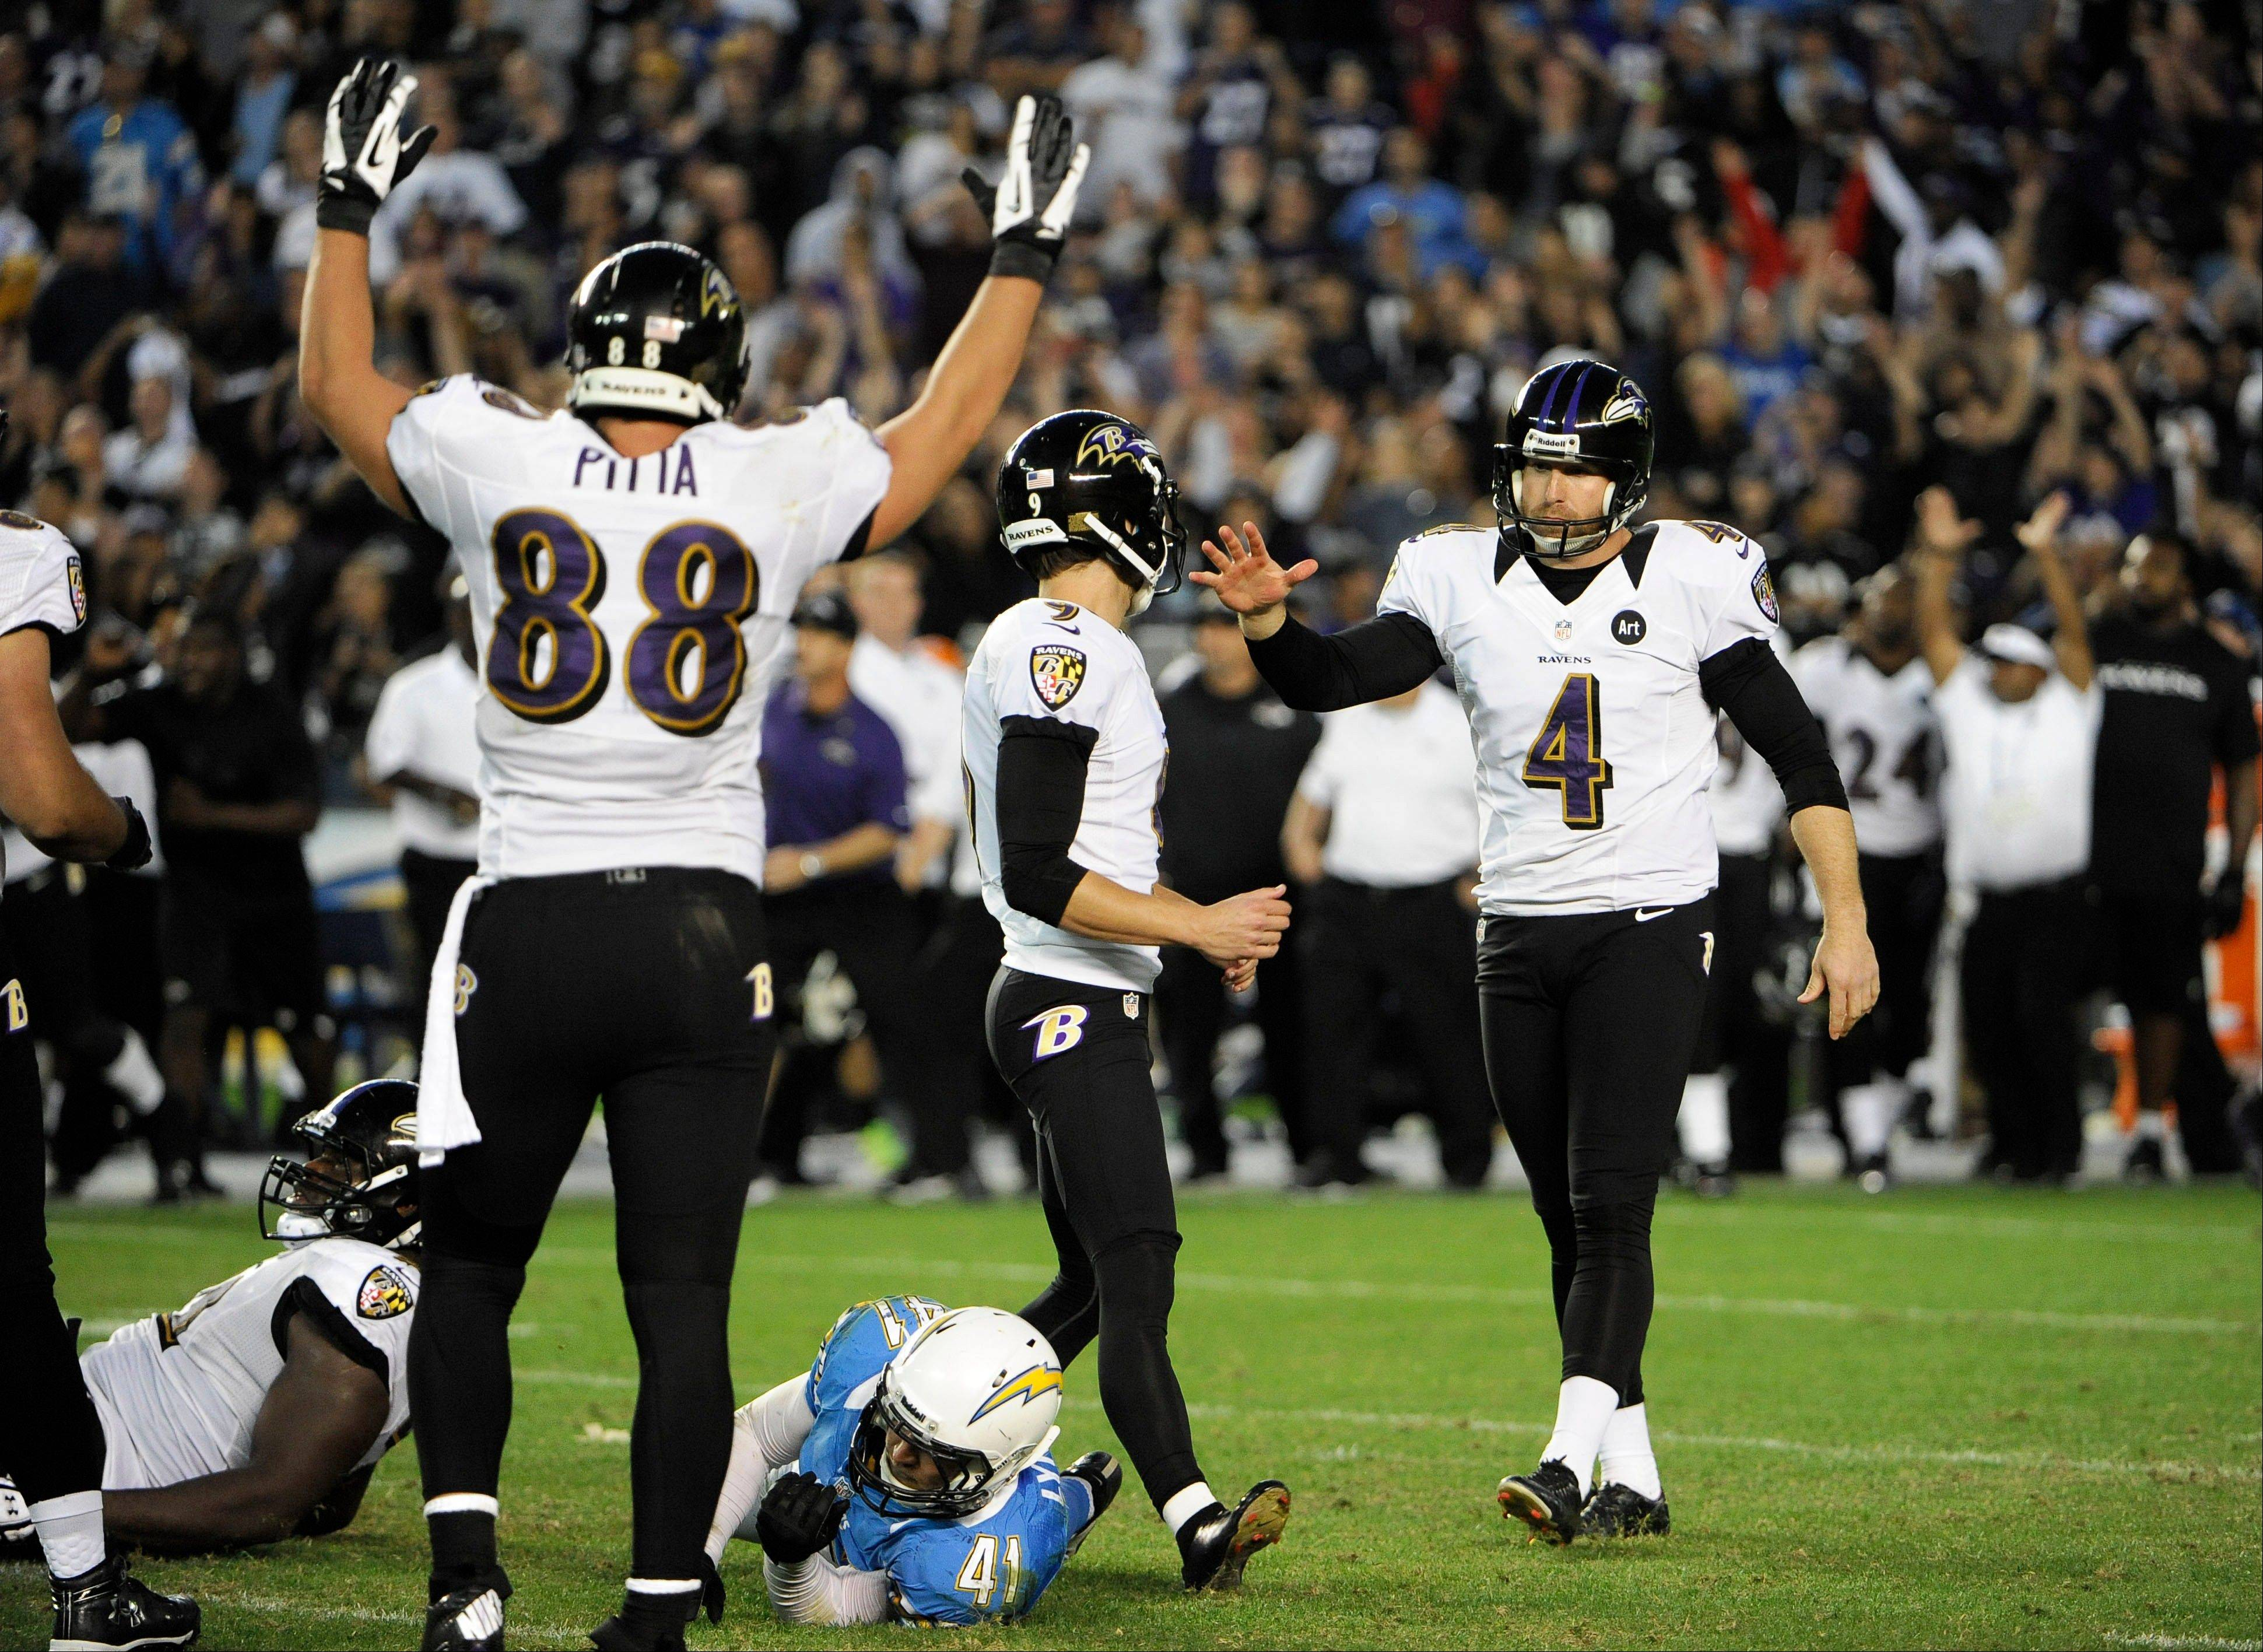 Baltimore Ravens kicker Justin Tucker (9) is congratulated by punter Sam Koch (4), as tight end Dennis Pitta (88) celebrates after Tucker kicked the game-winning field goal in overtime against the San Diego Chargers, Sunday in San Diego. The Ravens won 16-13.